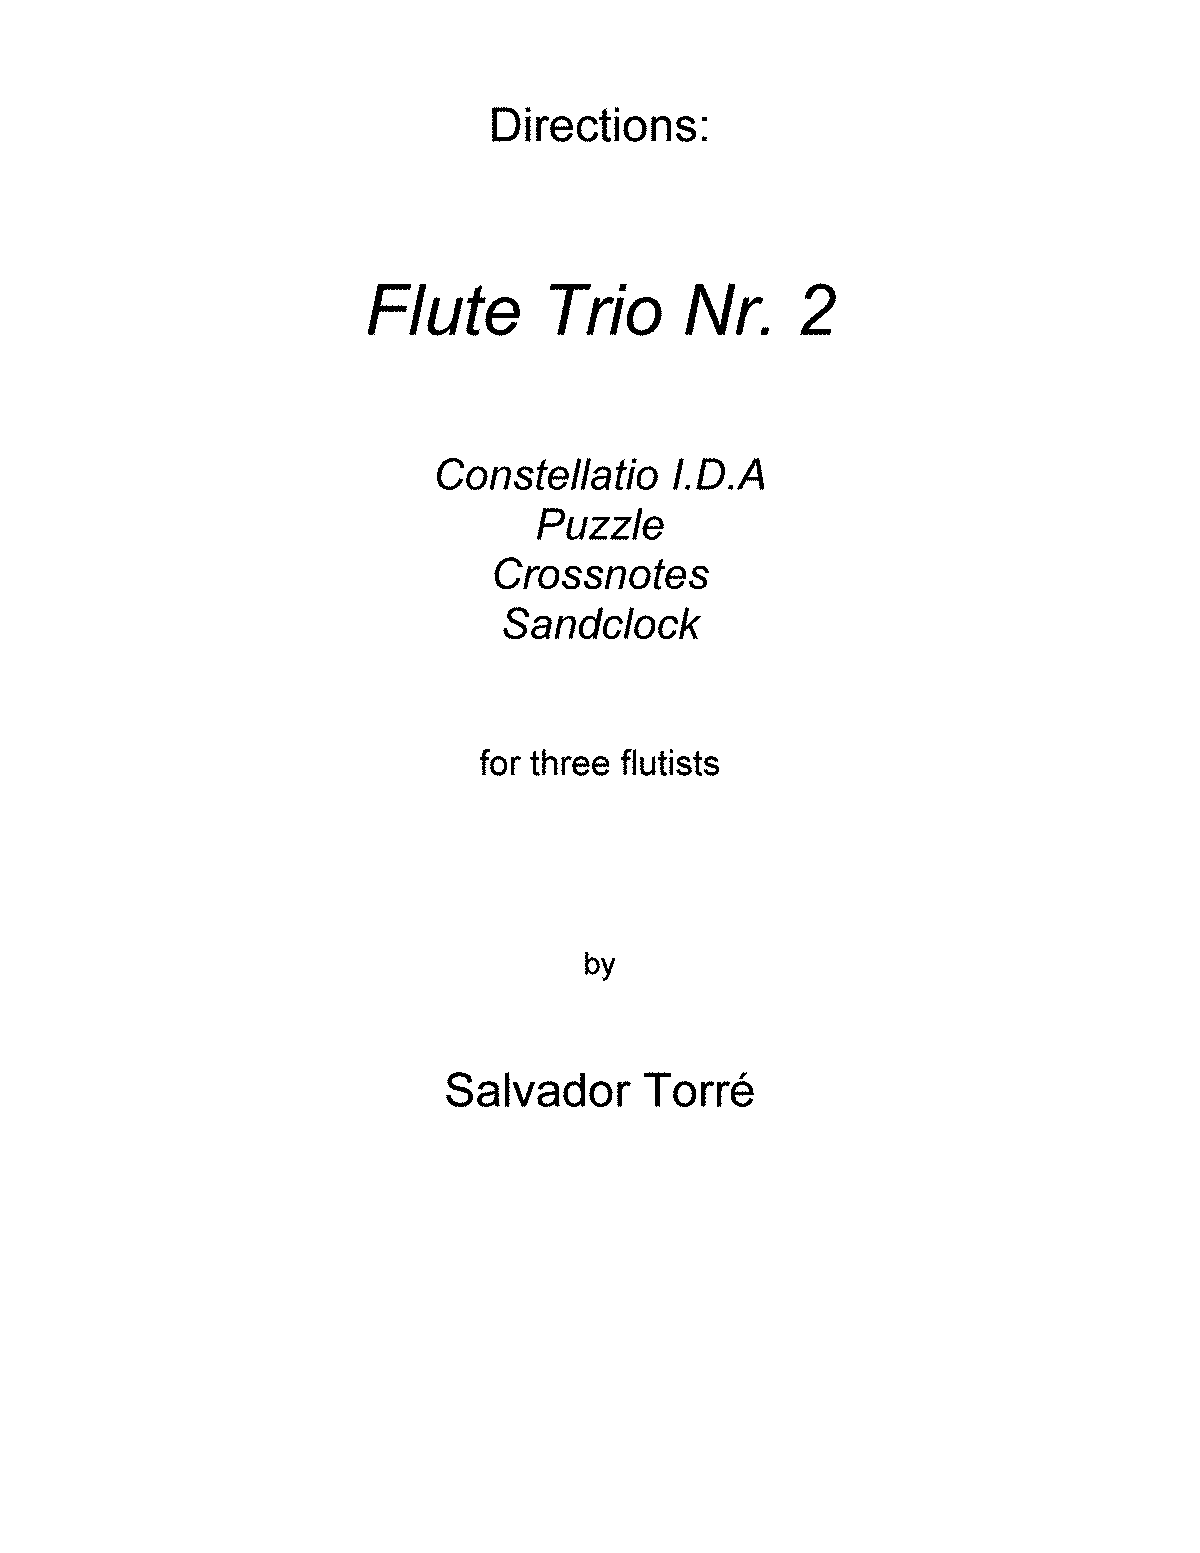 PMLP600966-Flute Trio Nr.2-DIRECTIONS for musicians.pdf